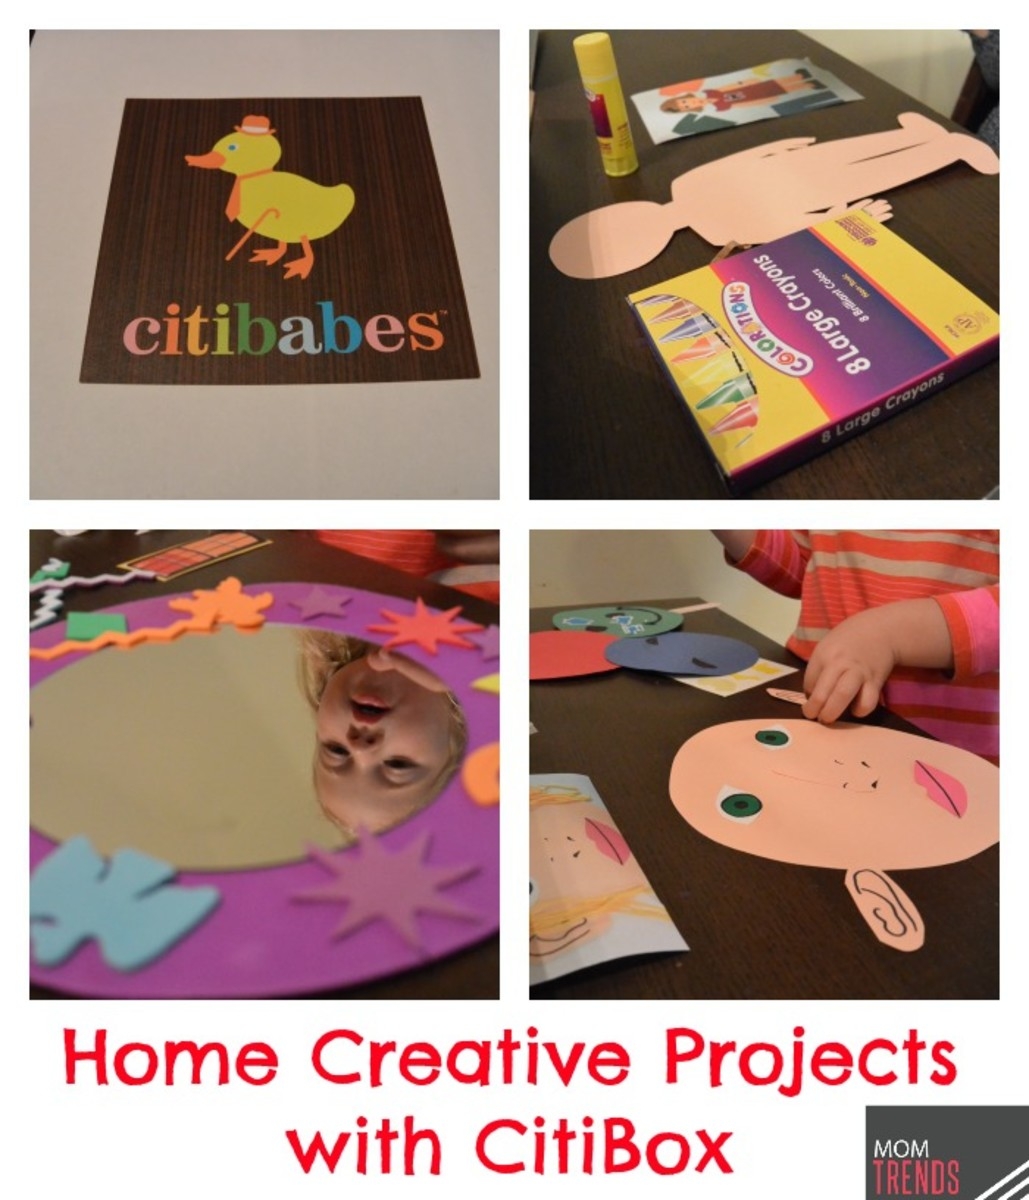 Home Creative Projects with CitiBox